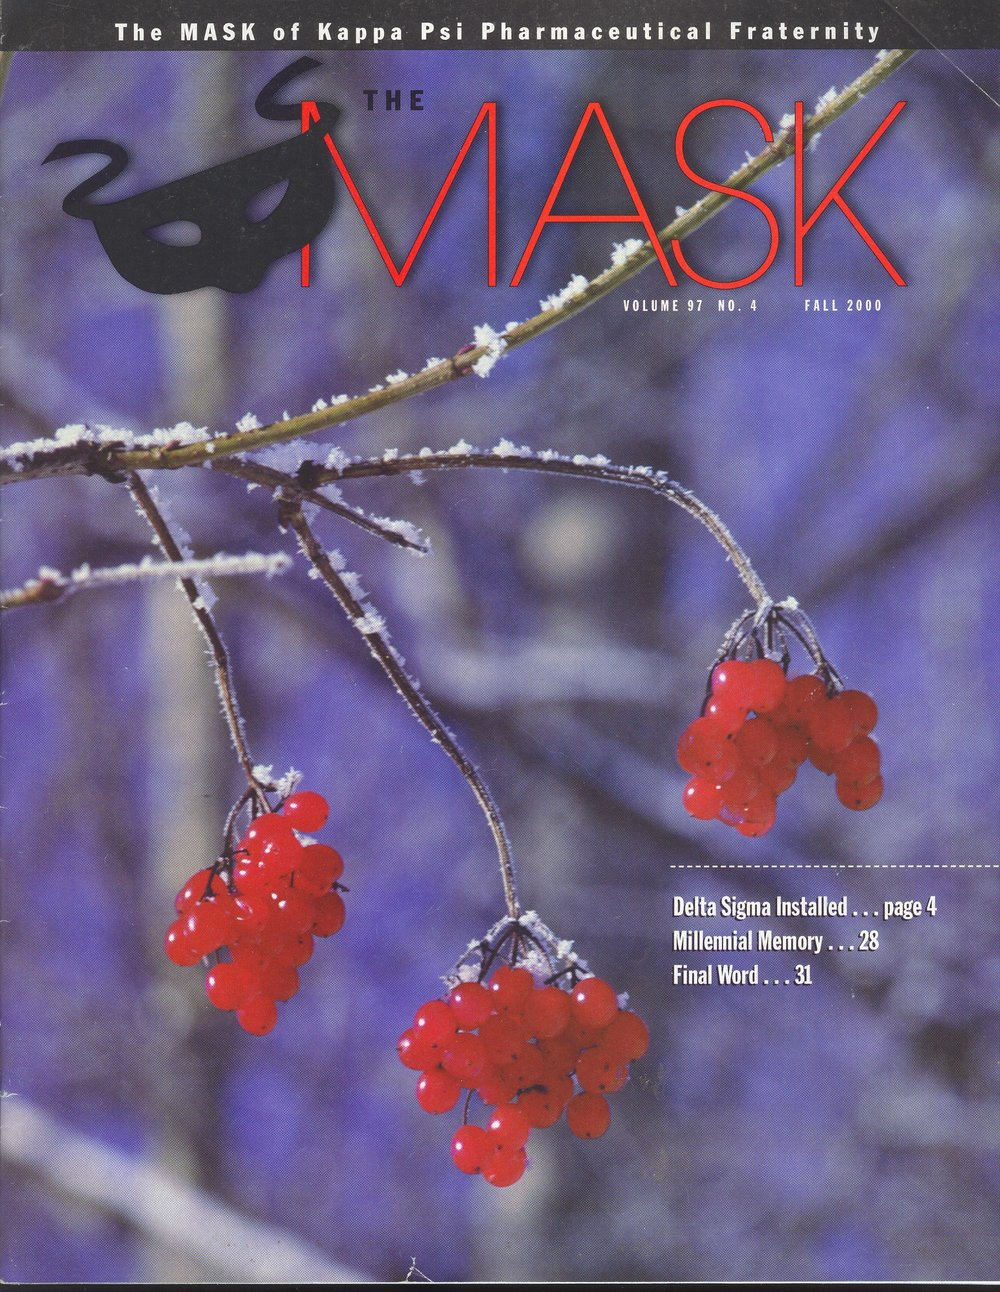 mask_cover_97-4_2000_fall.jpg